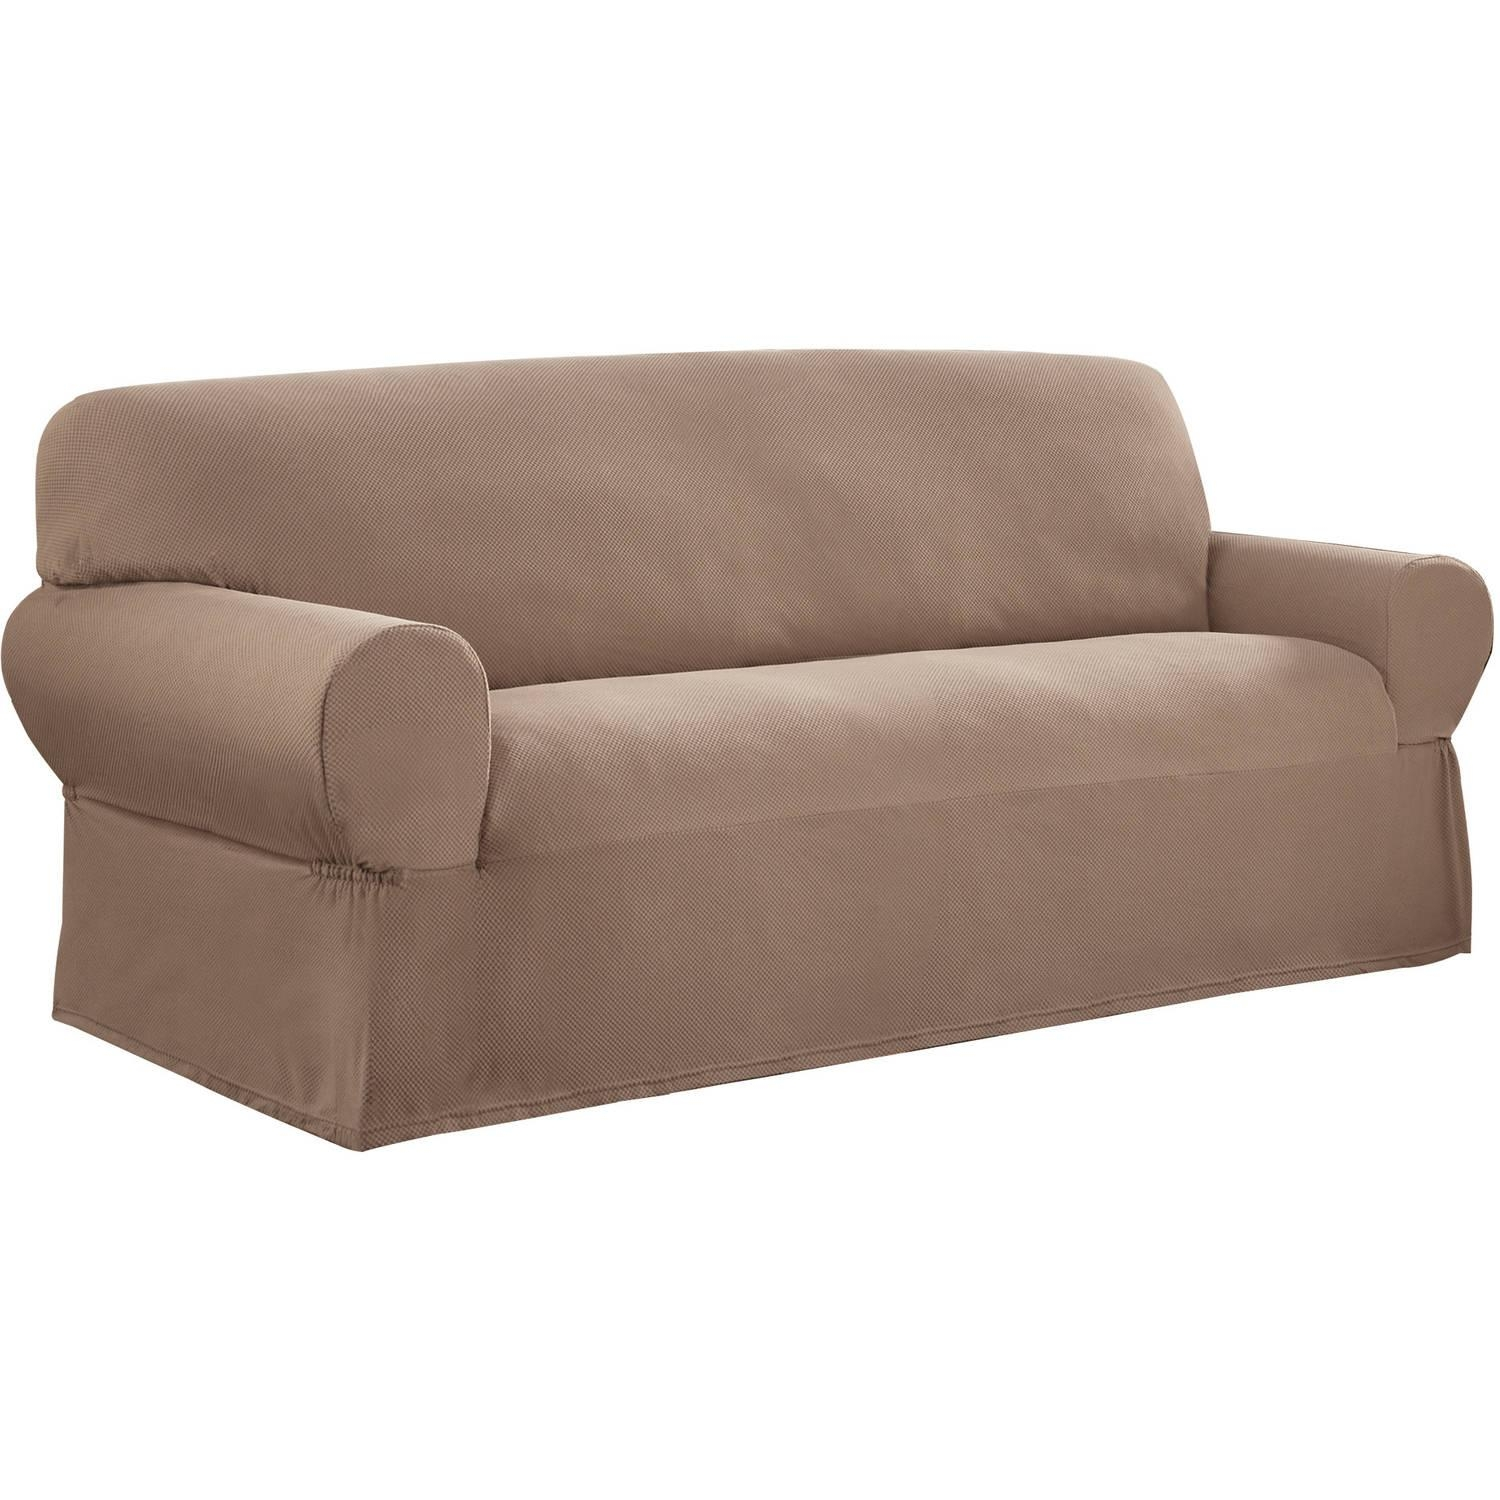 Mainstays 1 Piece Stretch Fabric Sofa Slipcover – Walmart In 3 Piece Slipcover Sets (Image 12 of 20)